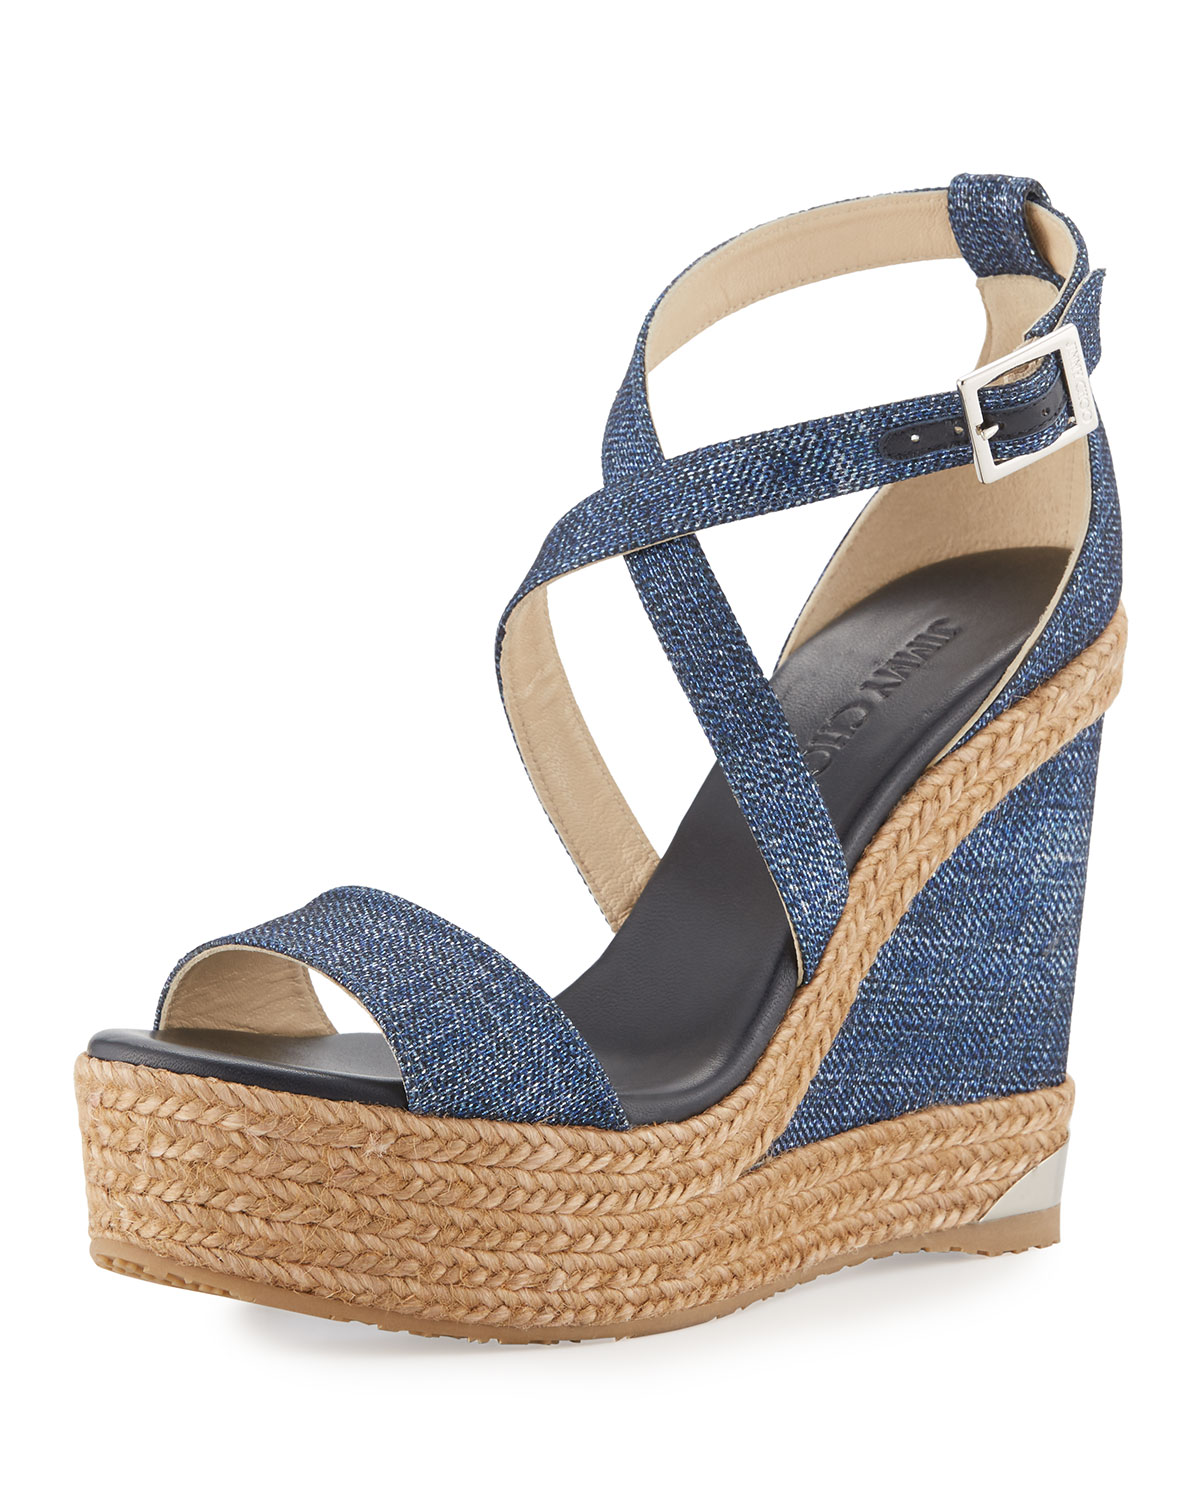 a6db761b6e0d Jimmy Choo Portia Denim Platform Wedge Sandals